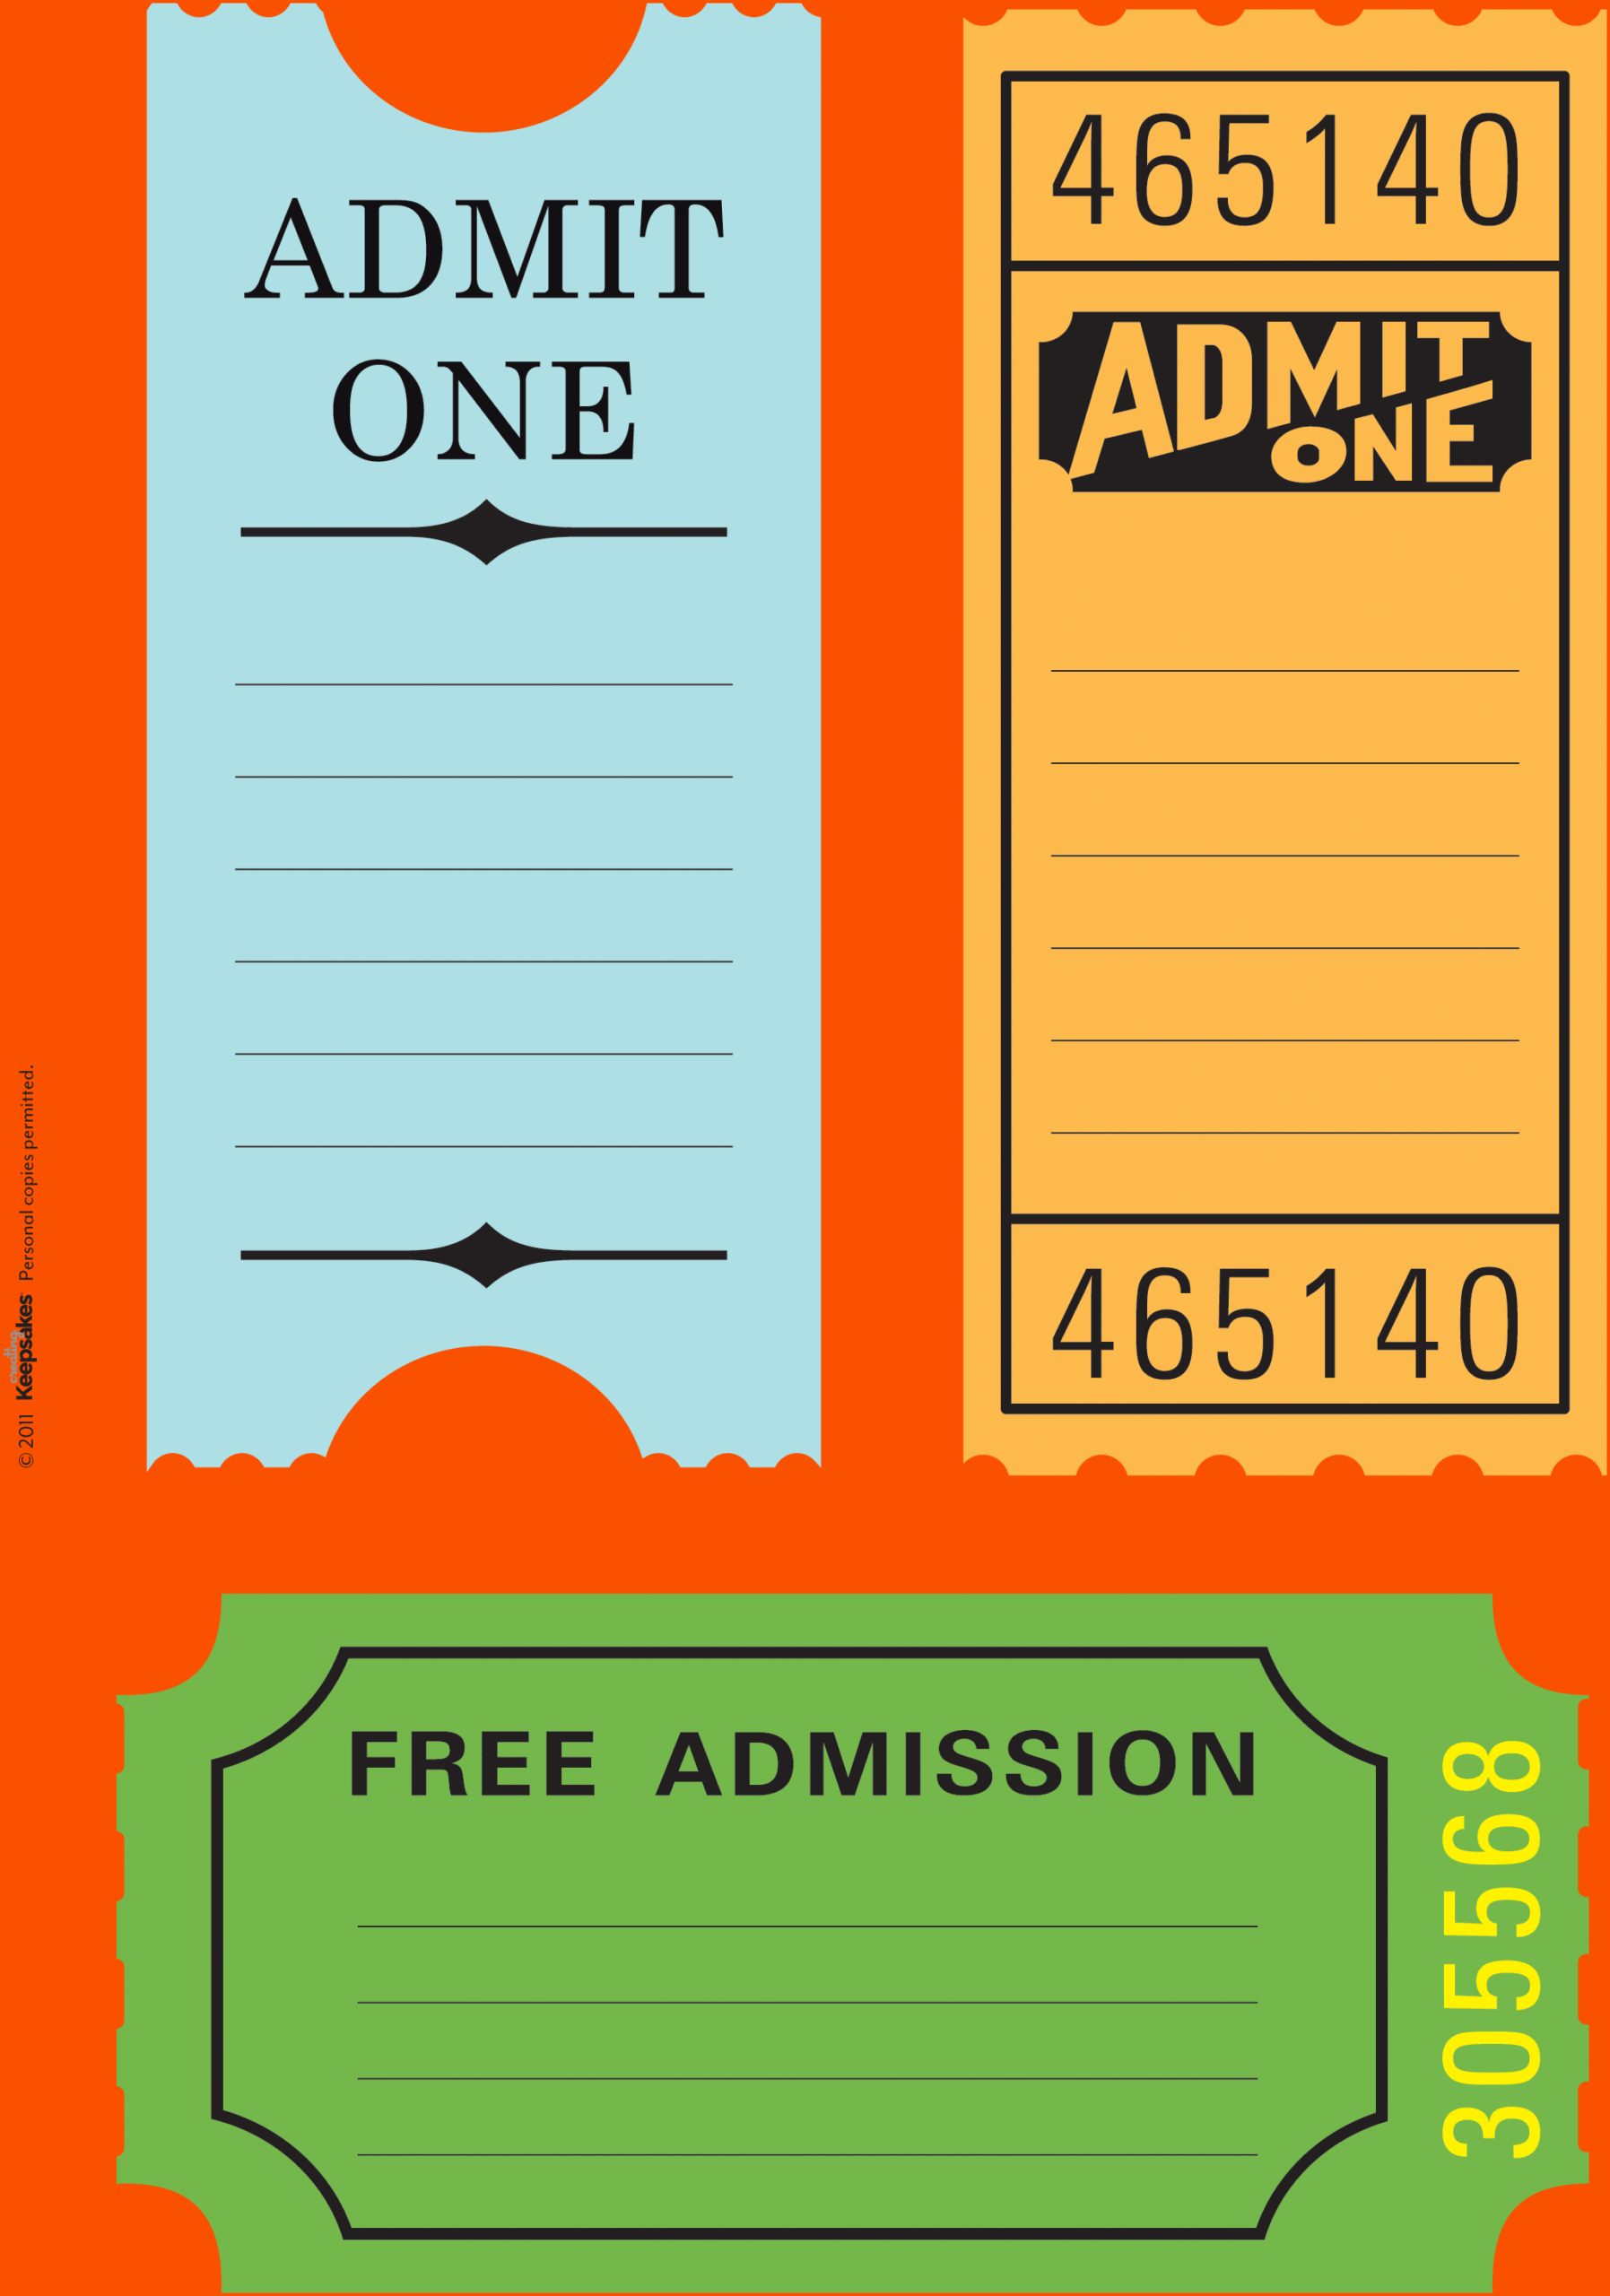 023 Free Printable Ticket Templates Travel Tickets Inside Blank Admission Ticket Template